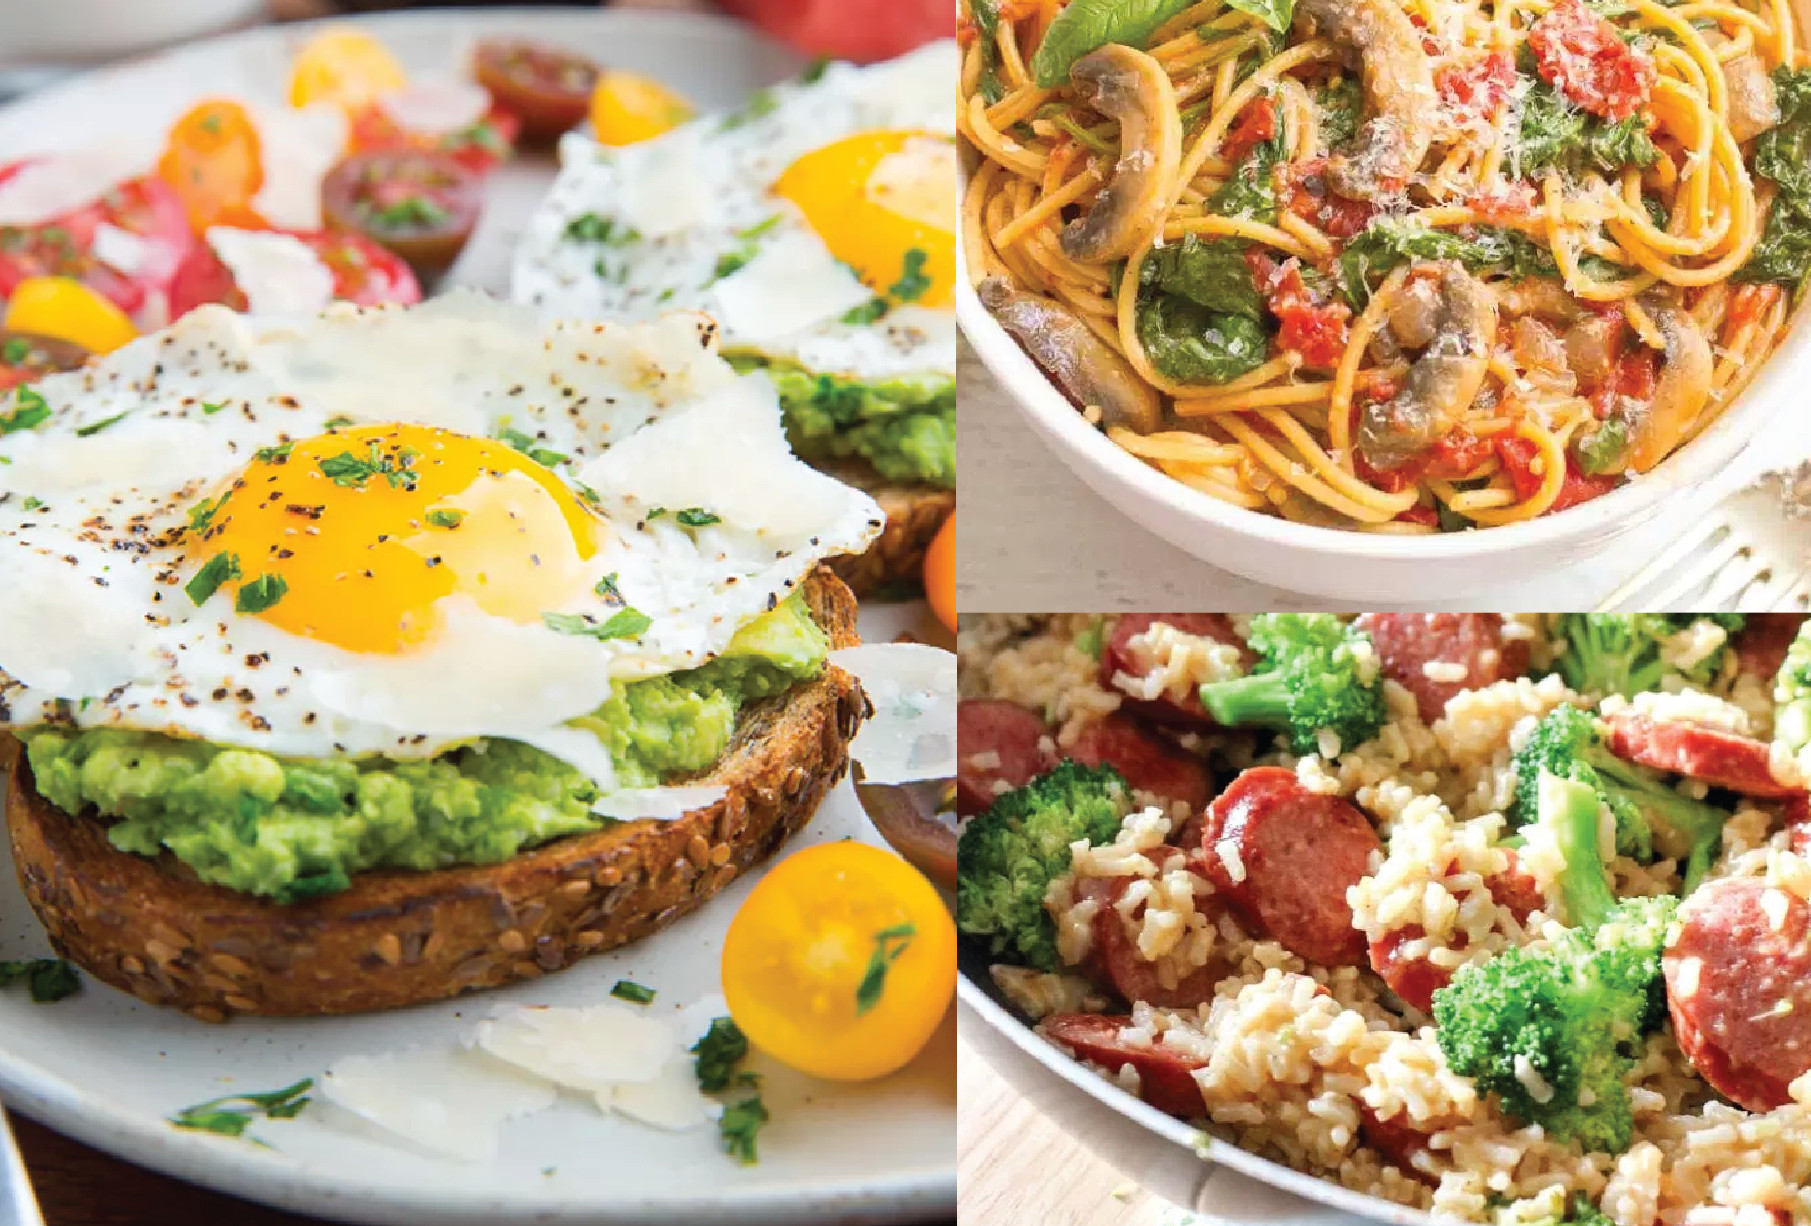 Cheap Easy Healthy Lunches  35 Cheap Bud Friendly Meals To Feed The Family for